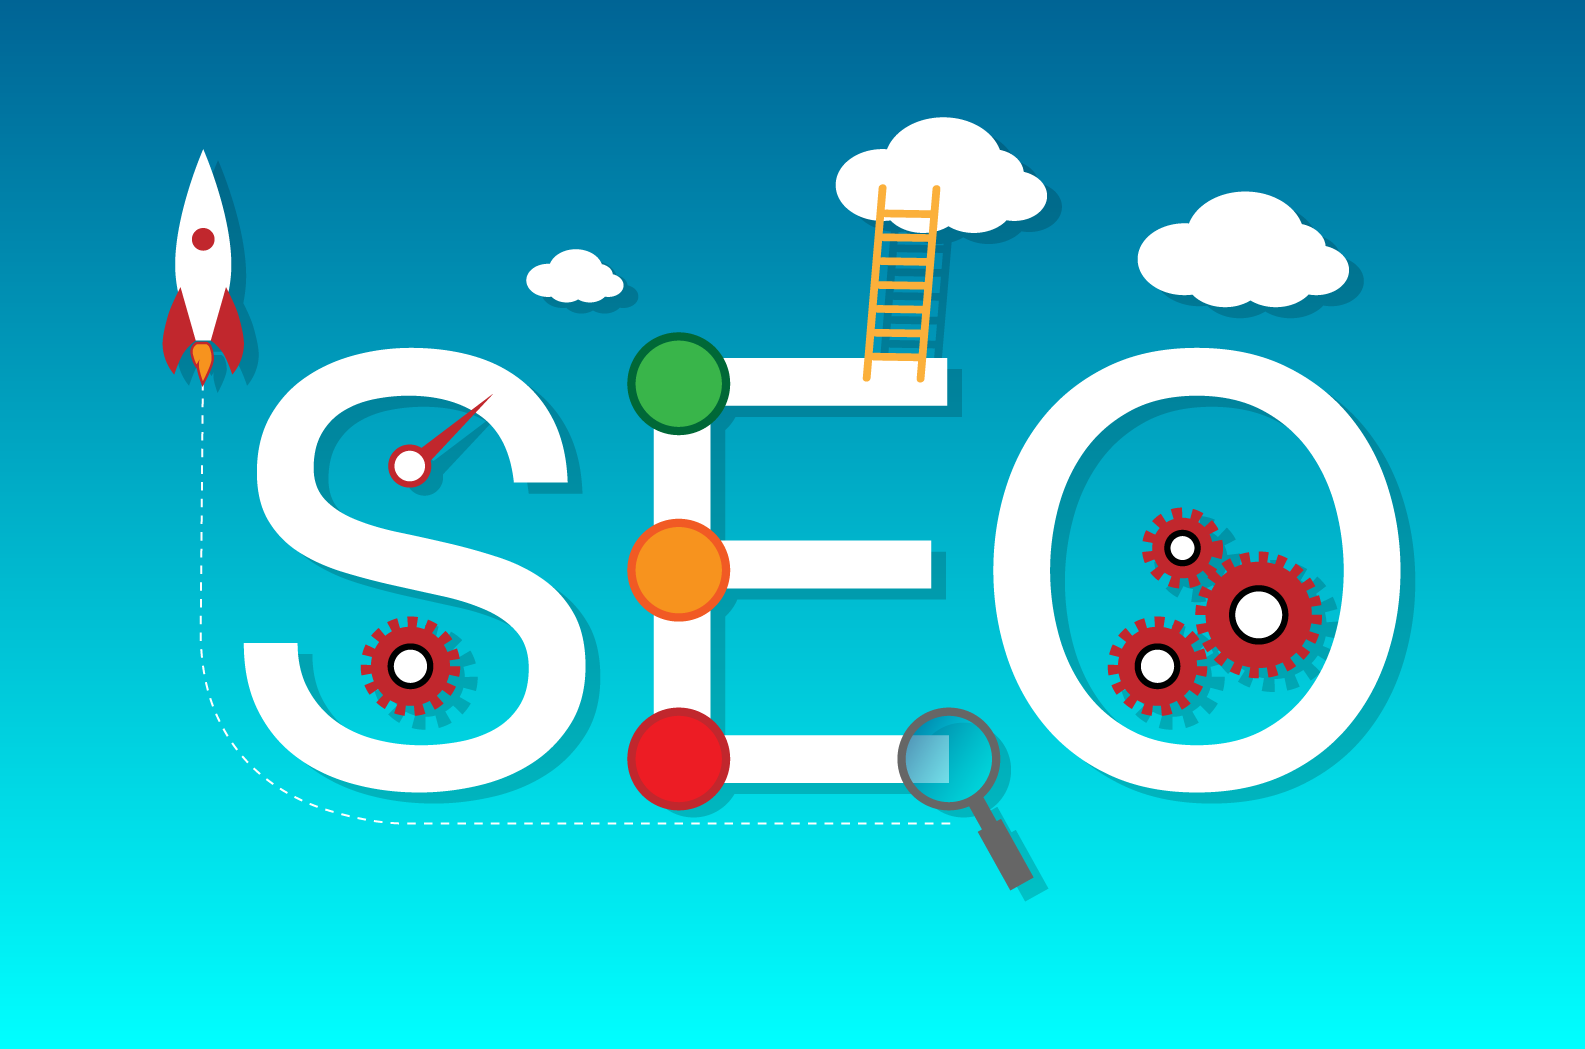 Why do I need SEO when I thought my website was SEO'd to begin with?